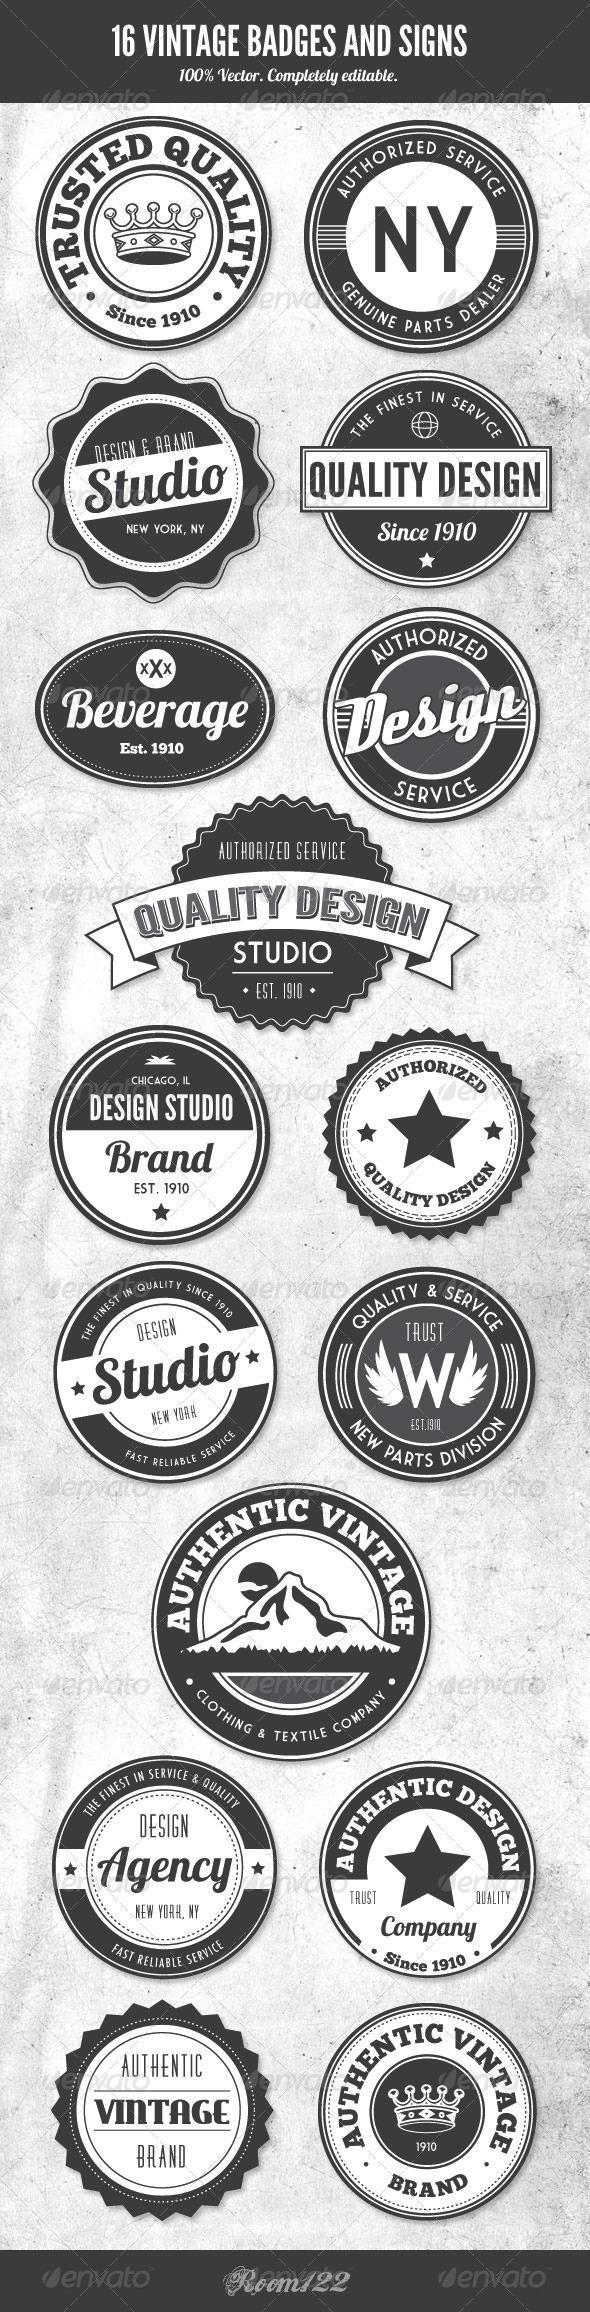 Vintage Badge and Logo PSD Premium